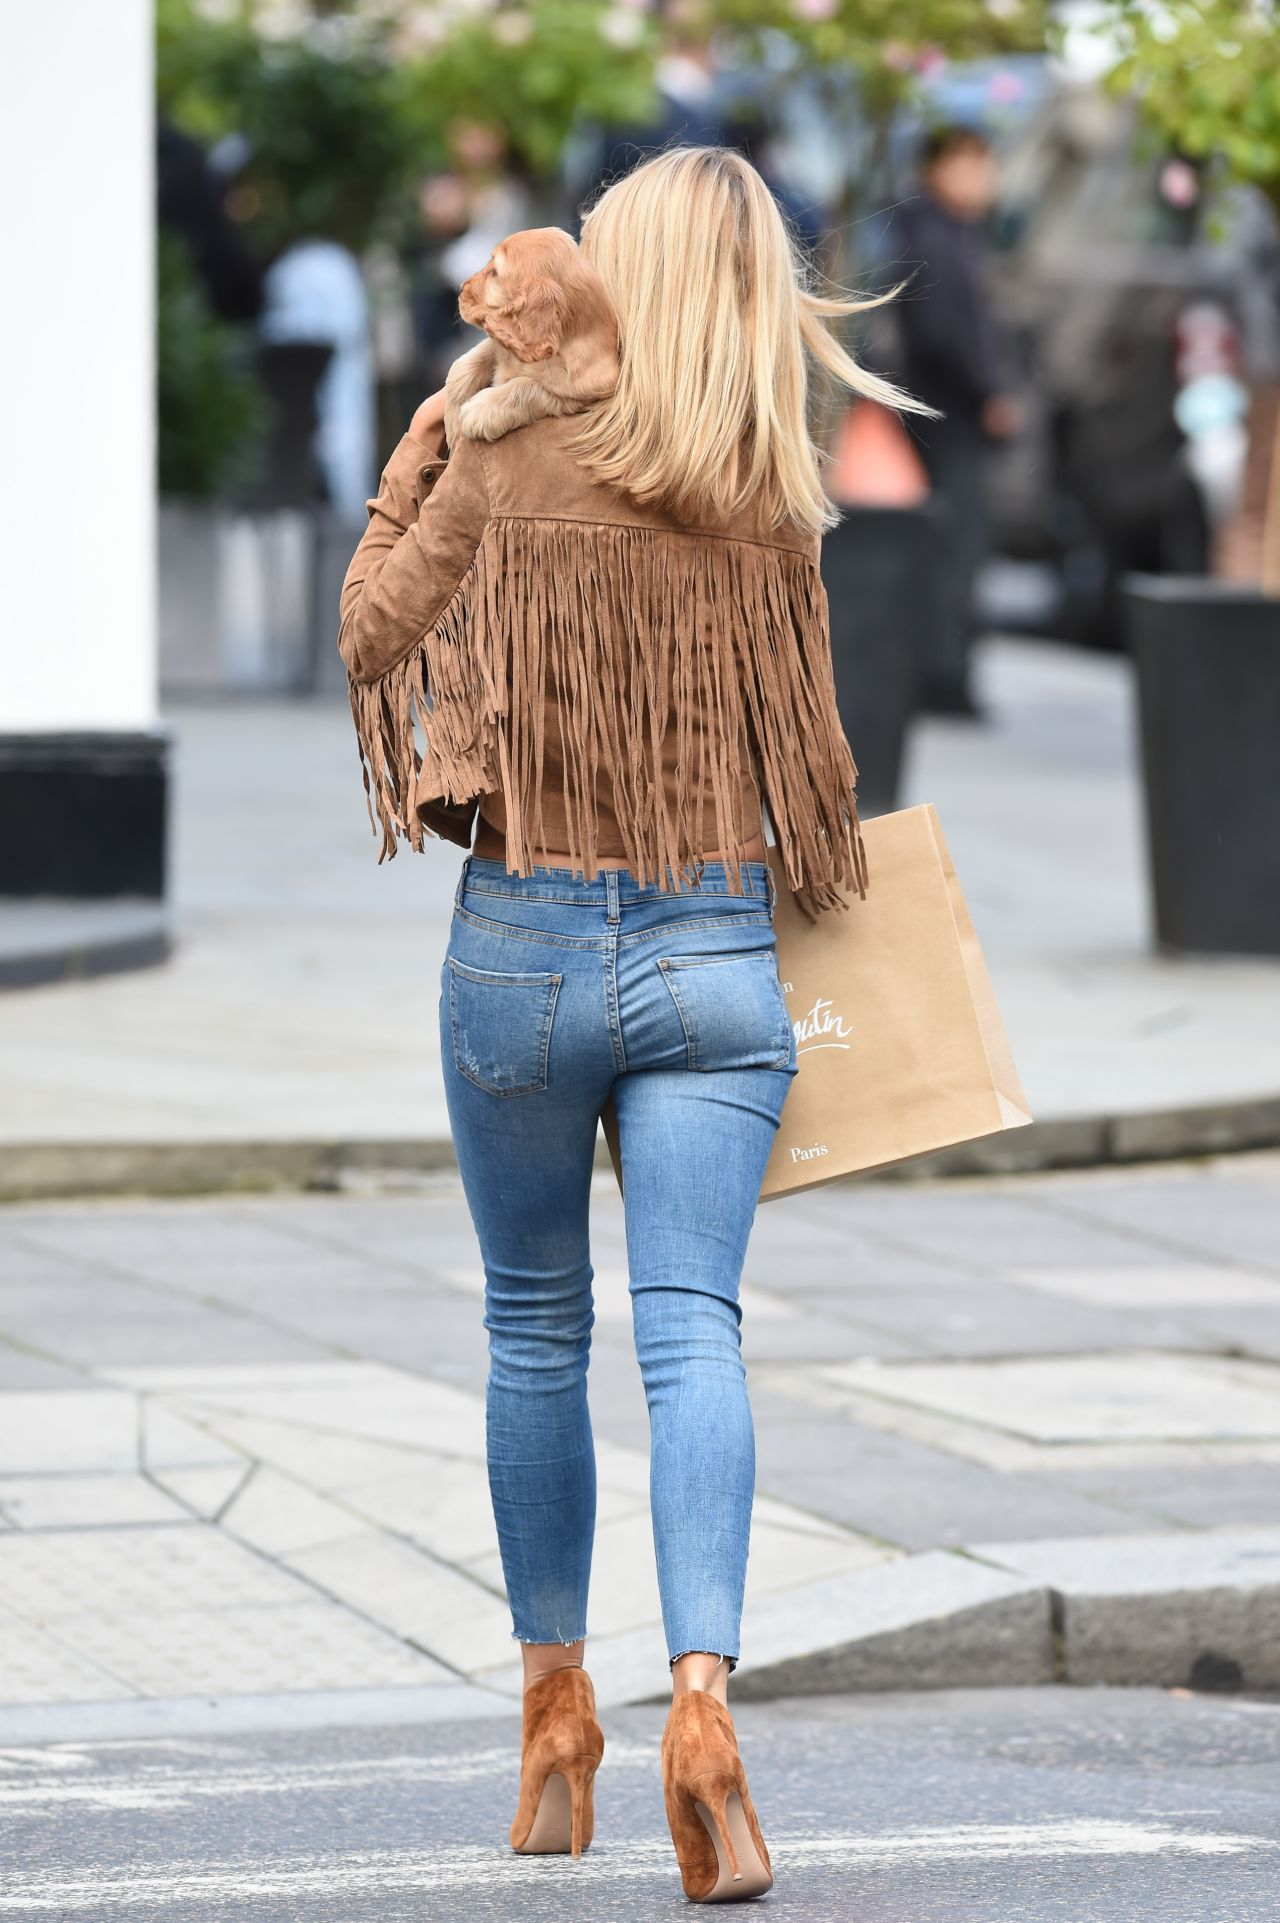 Kimberley Garner Booty In Jeans Out In London October 2015